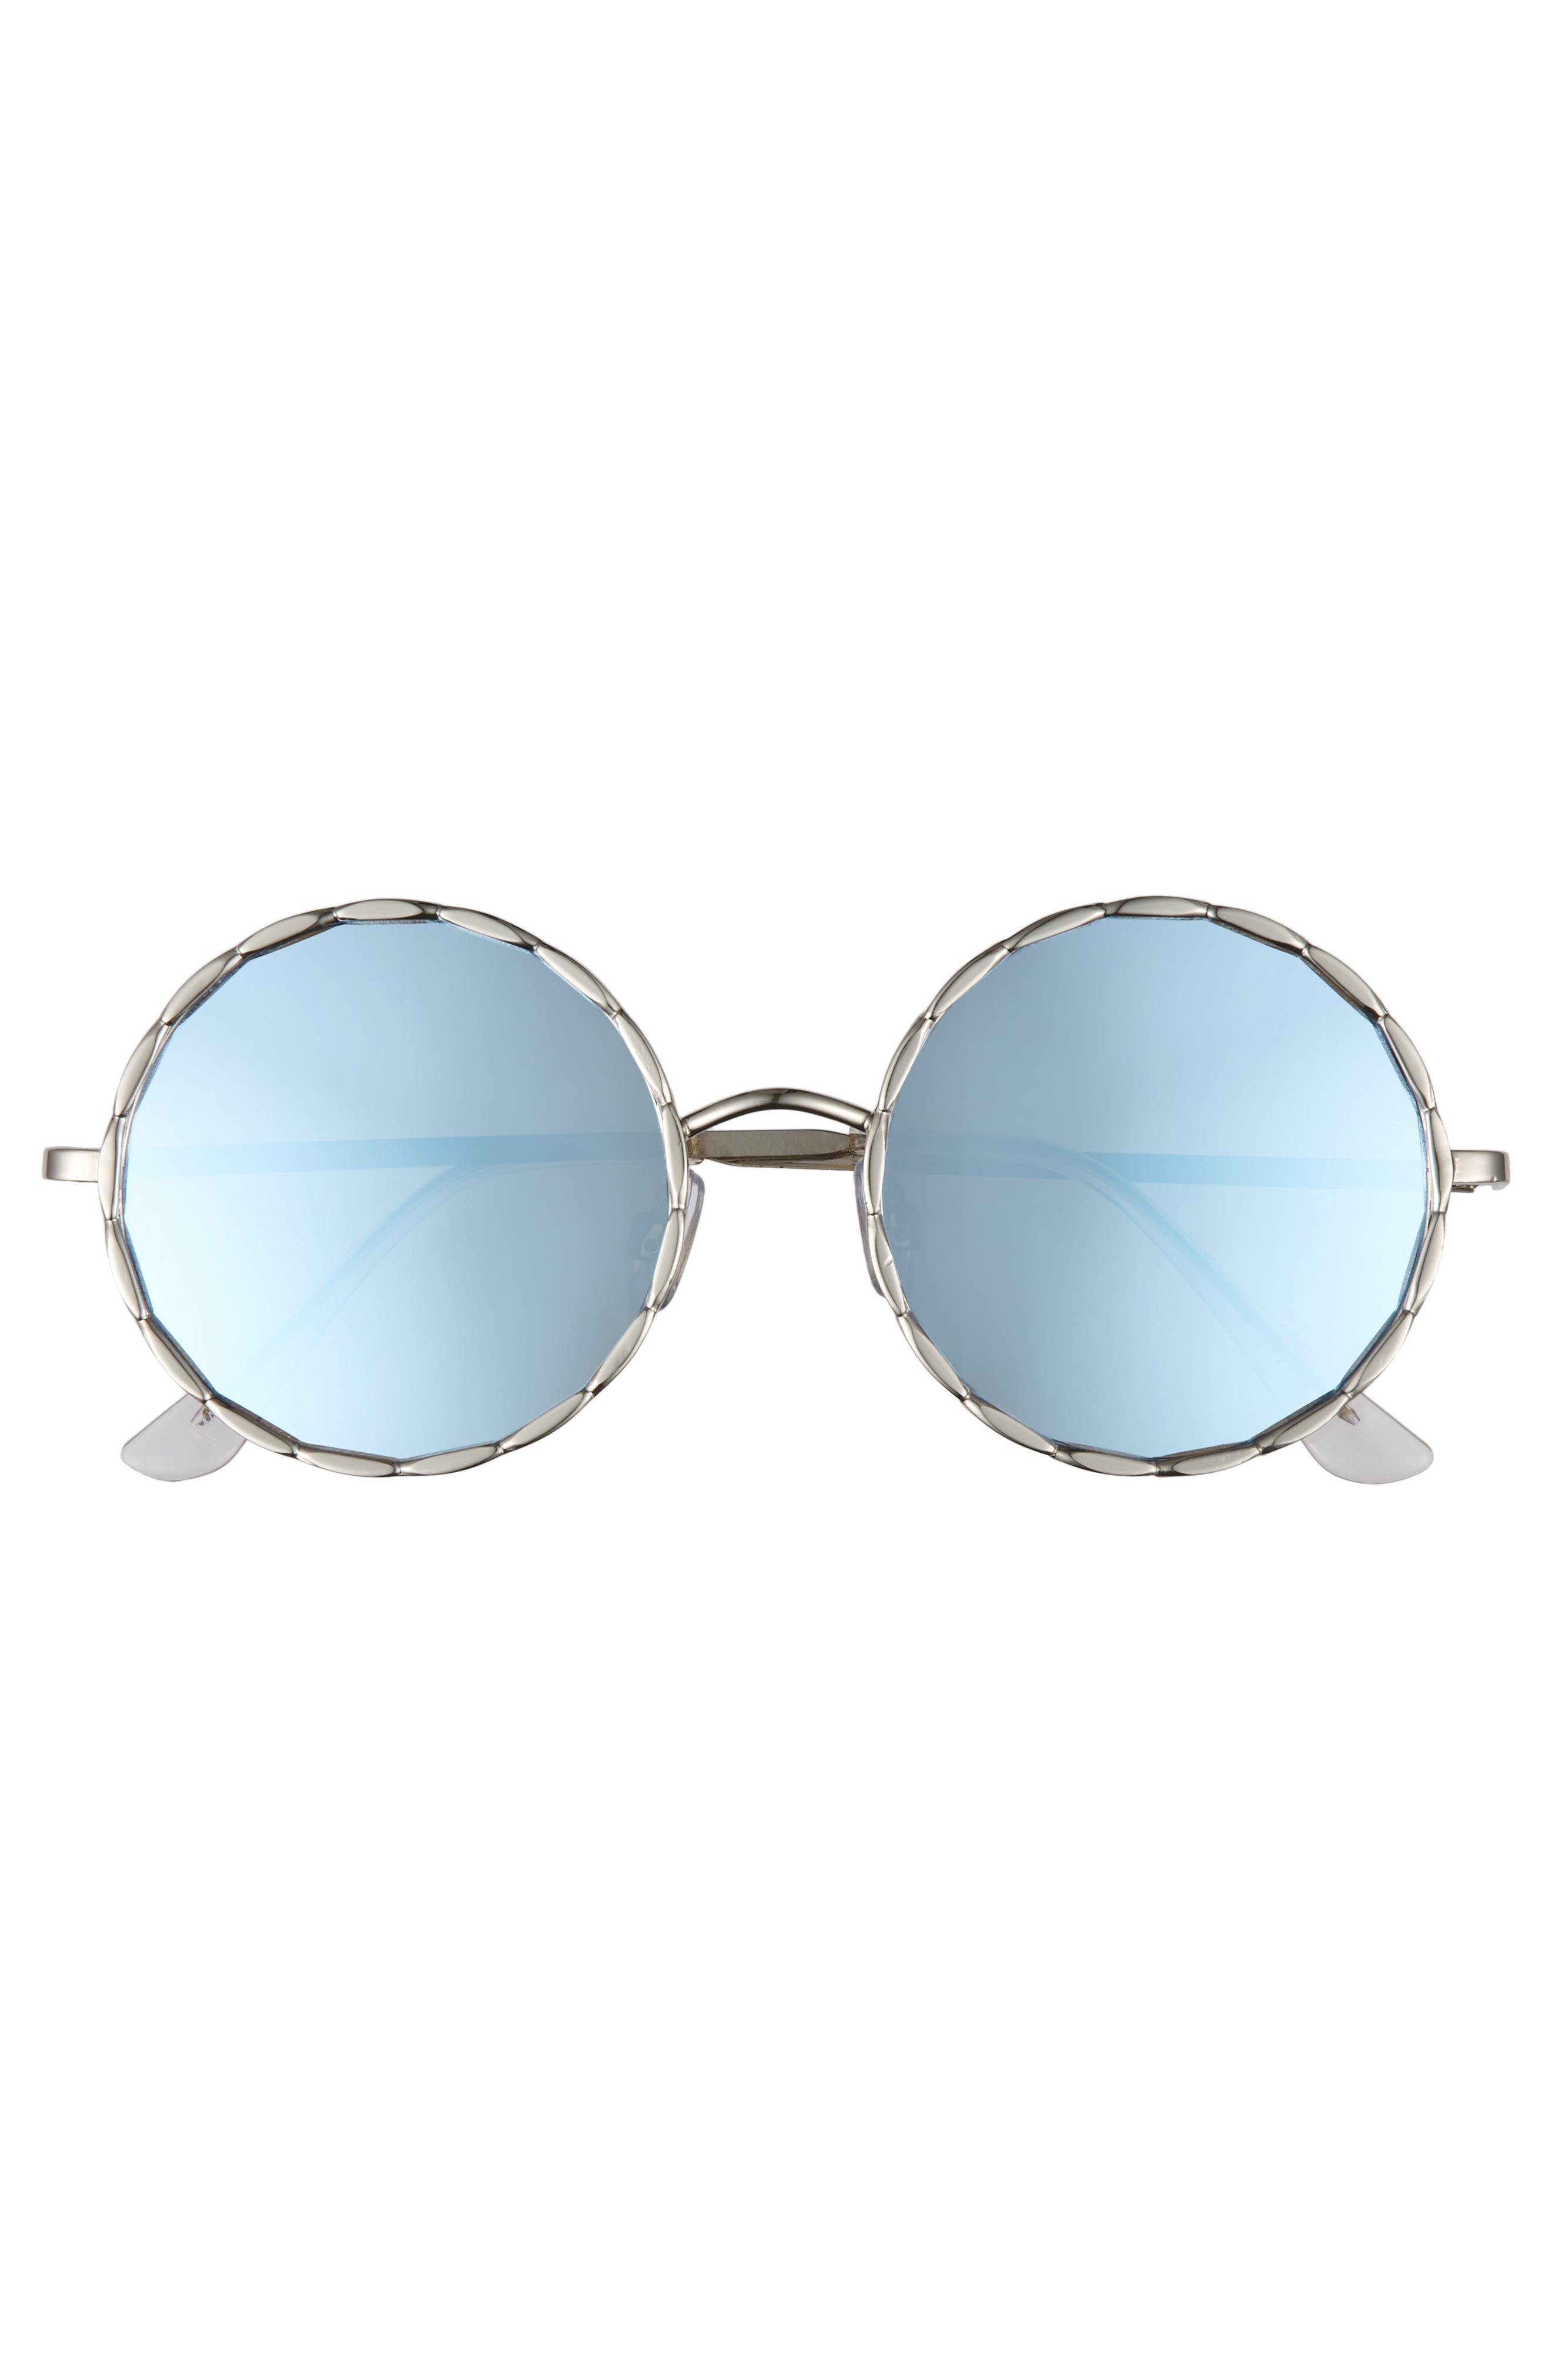 58mm Textured Round Sunglasses,                             Alternate thumbnail 3, color,                             Silver/ Blue